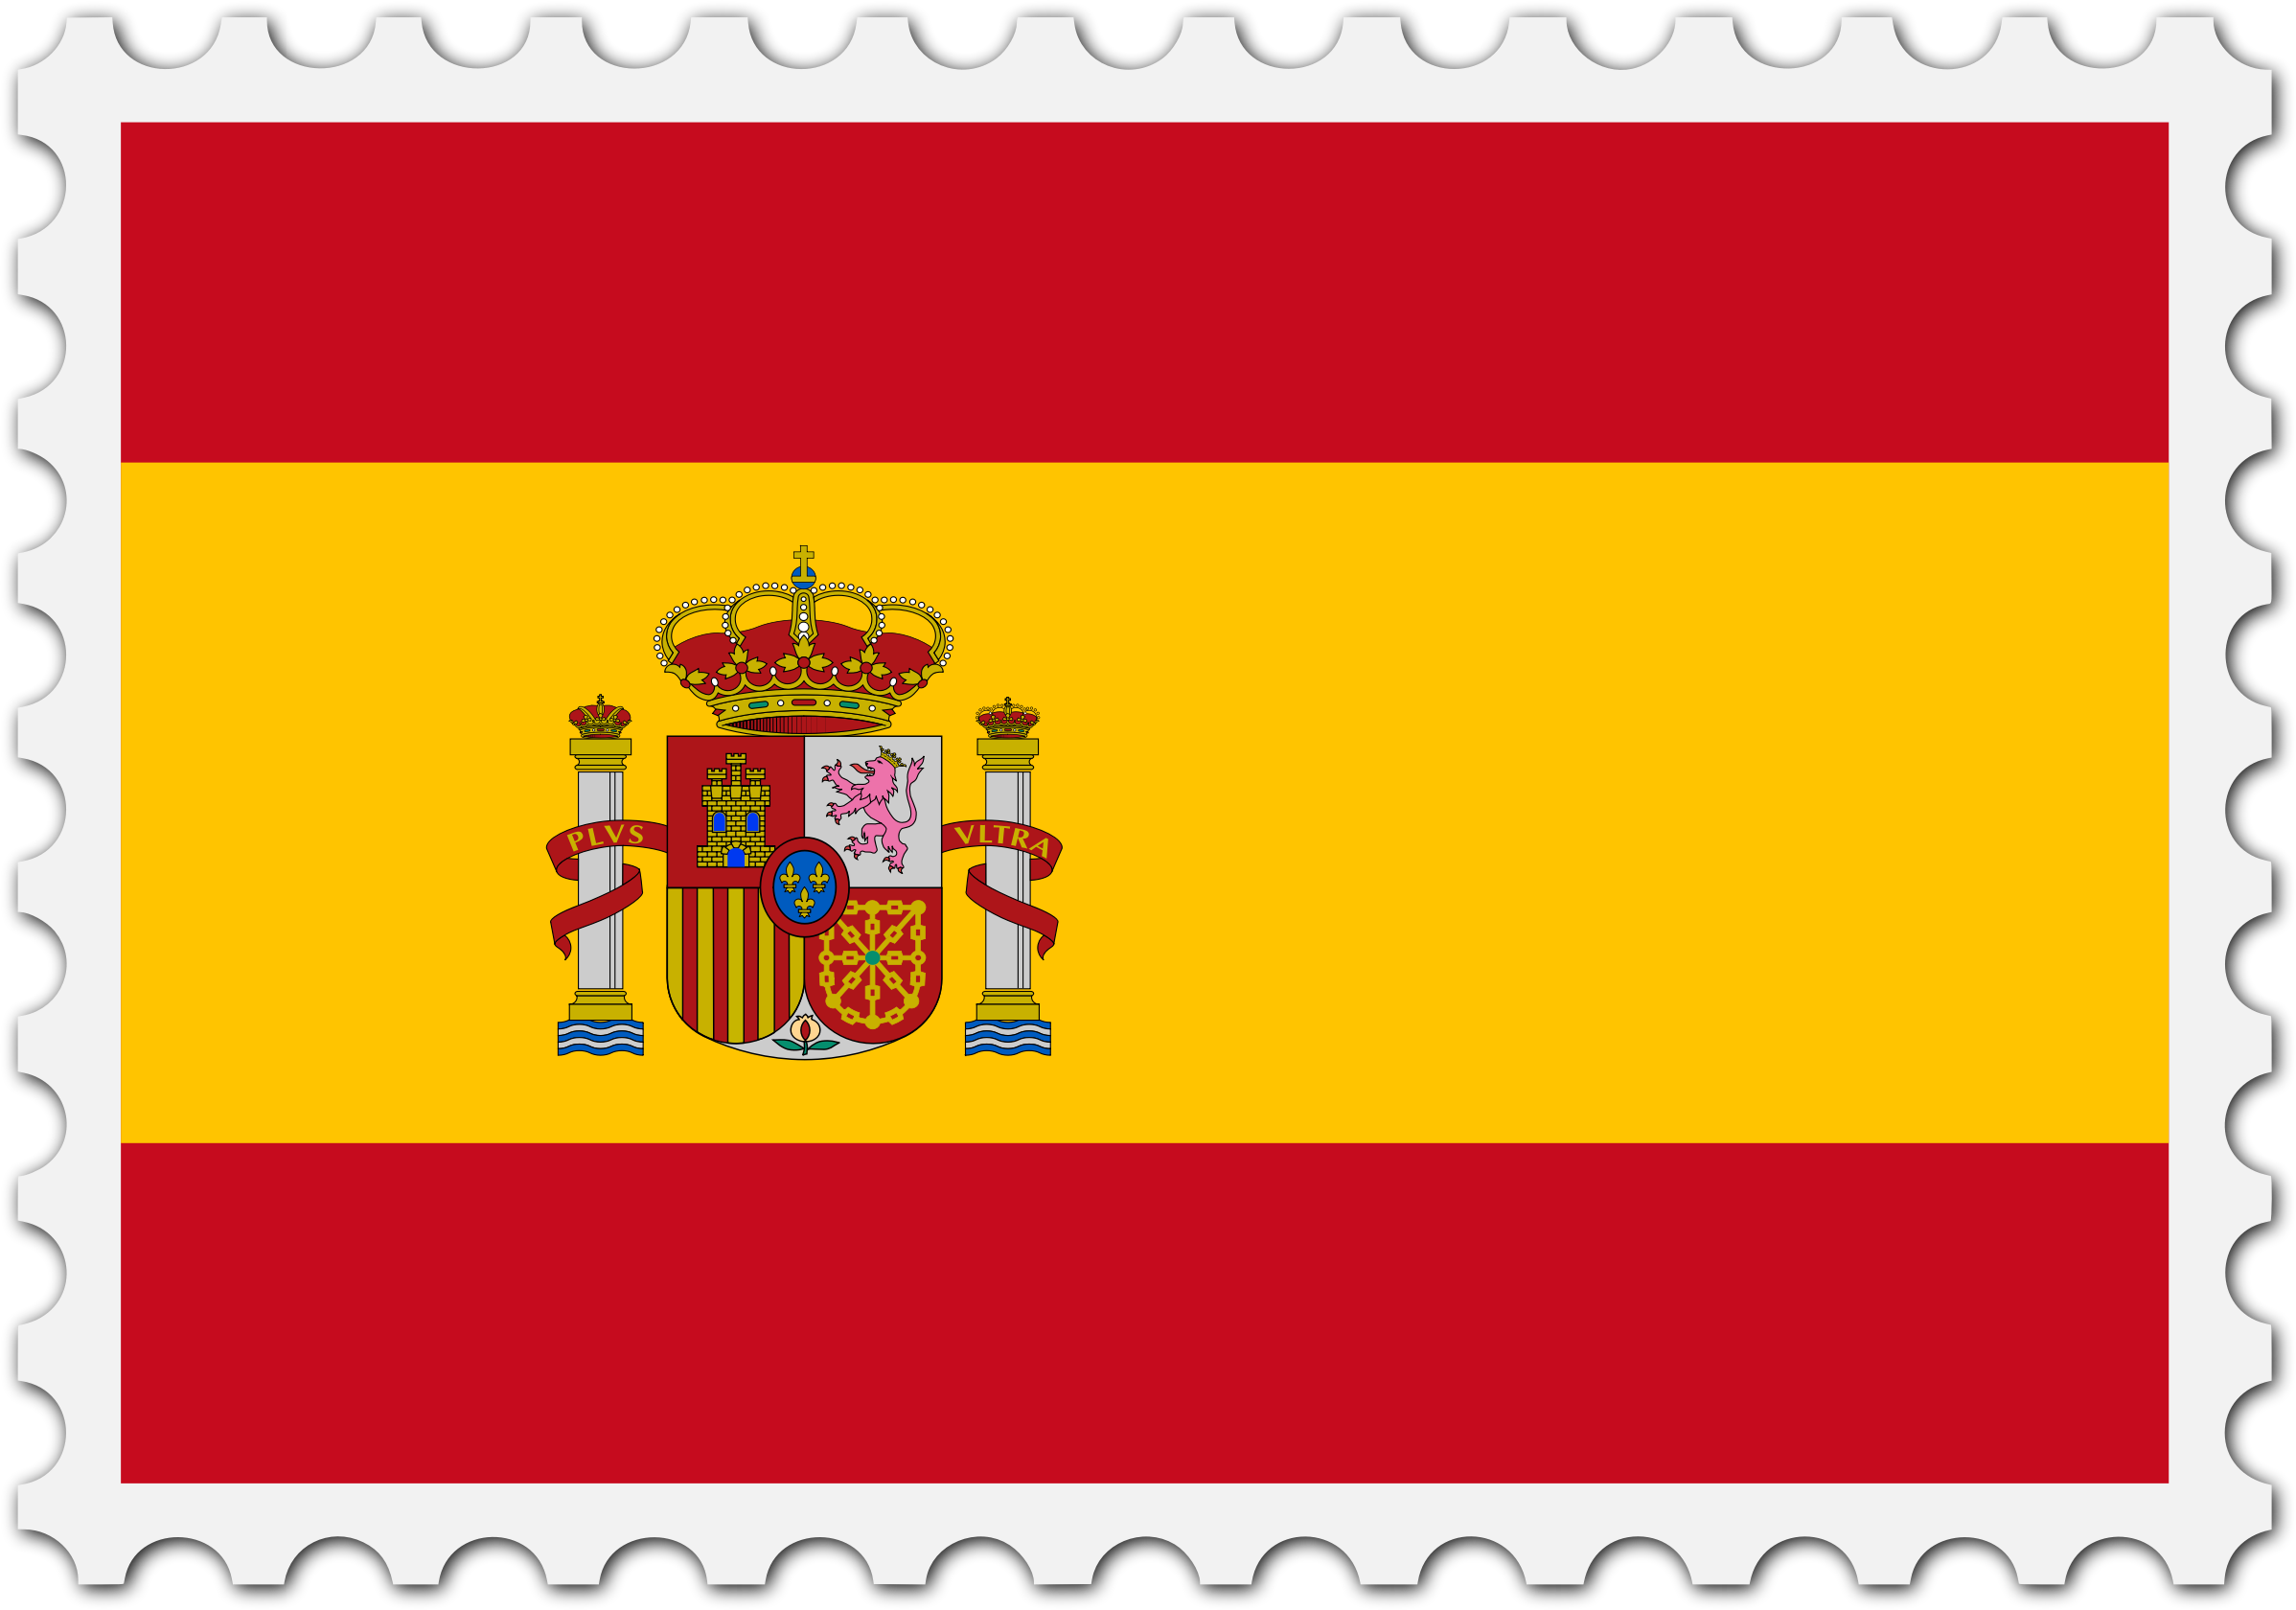 Spain flag stamp by Firkin